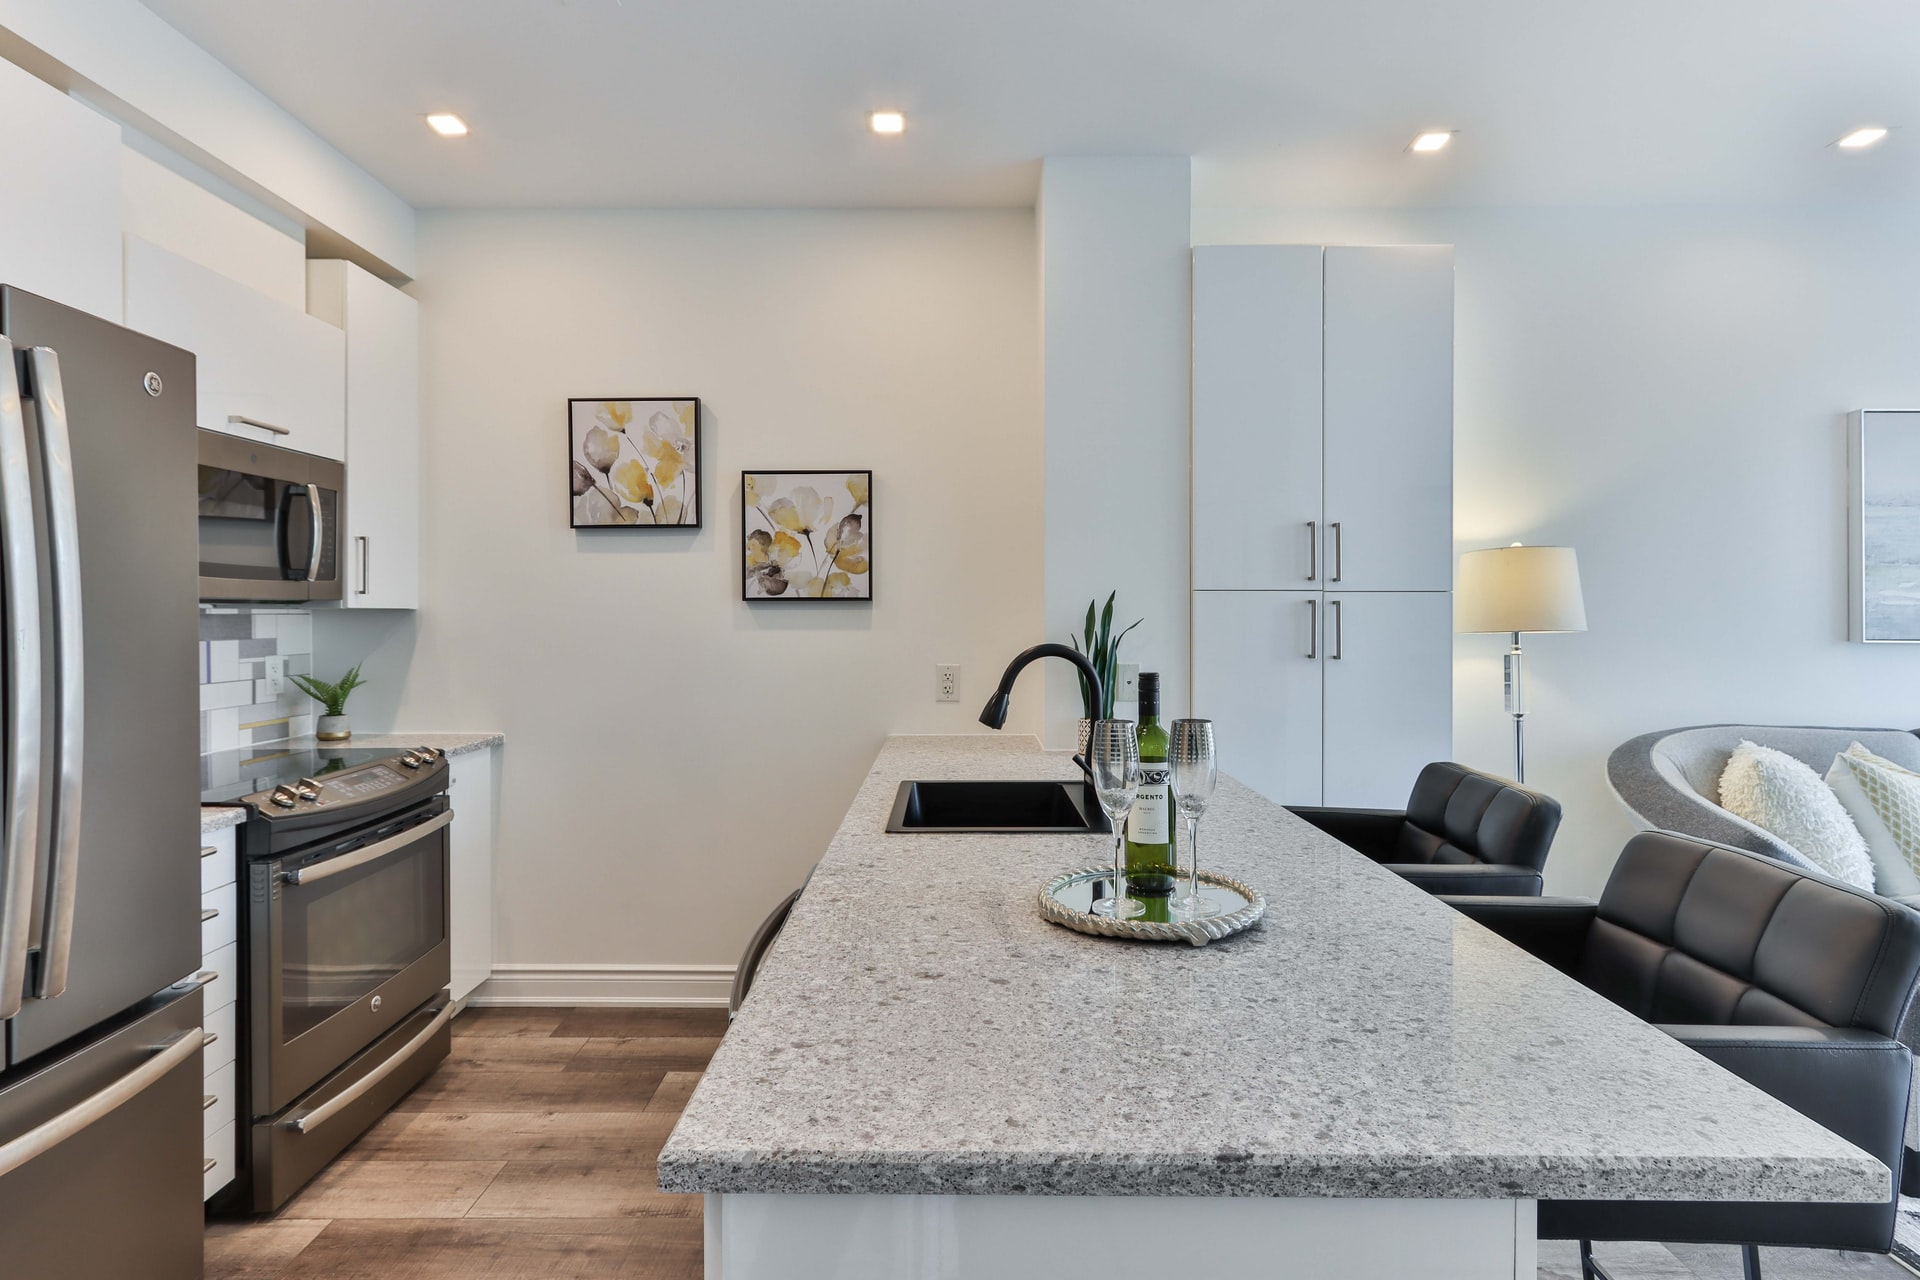 Where to Get Basement Suite Kitchen Cabinets